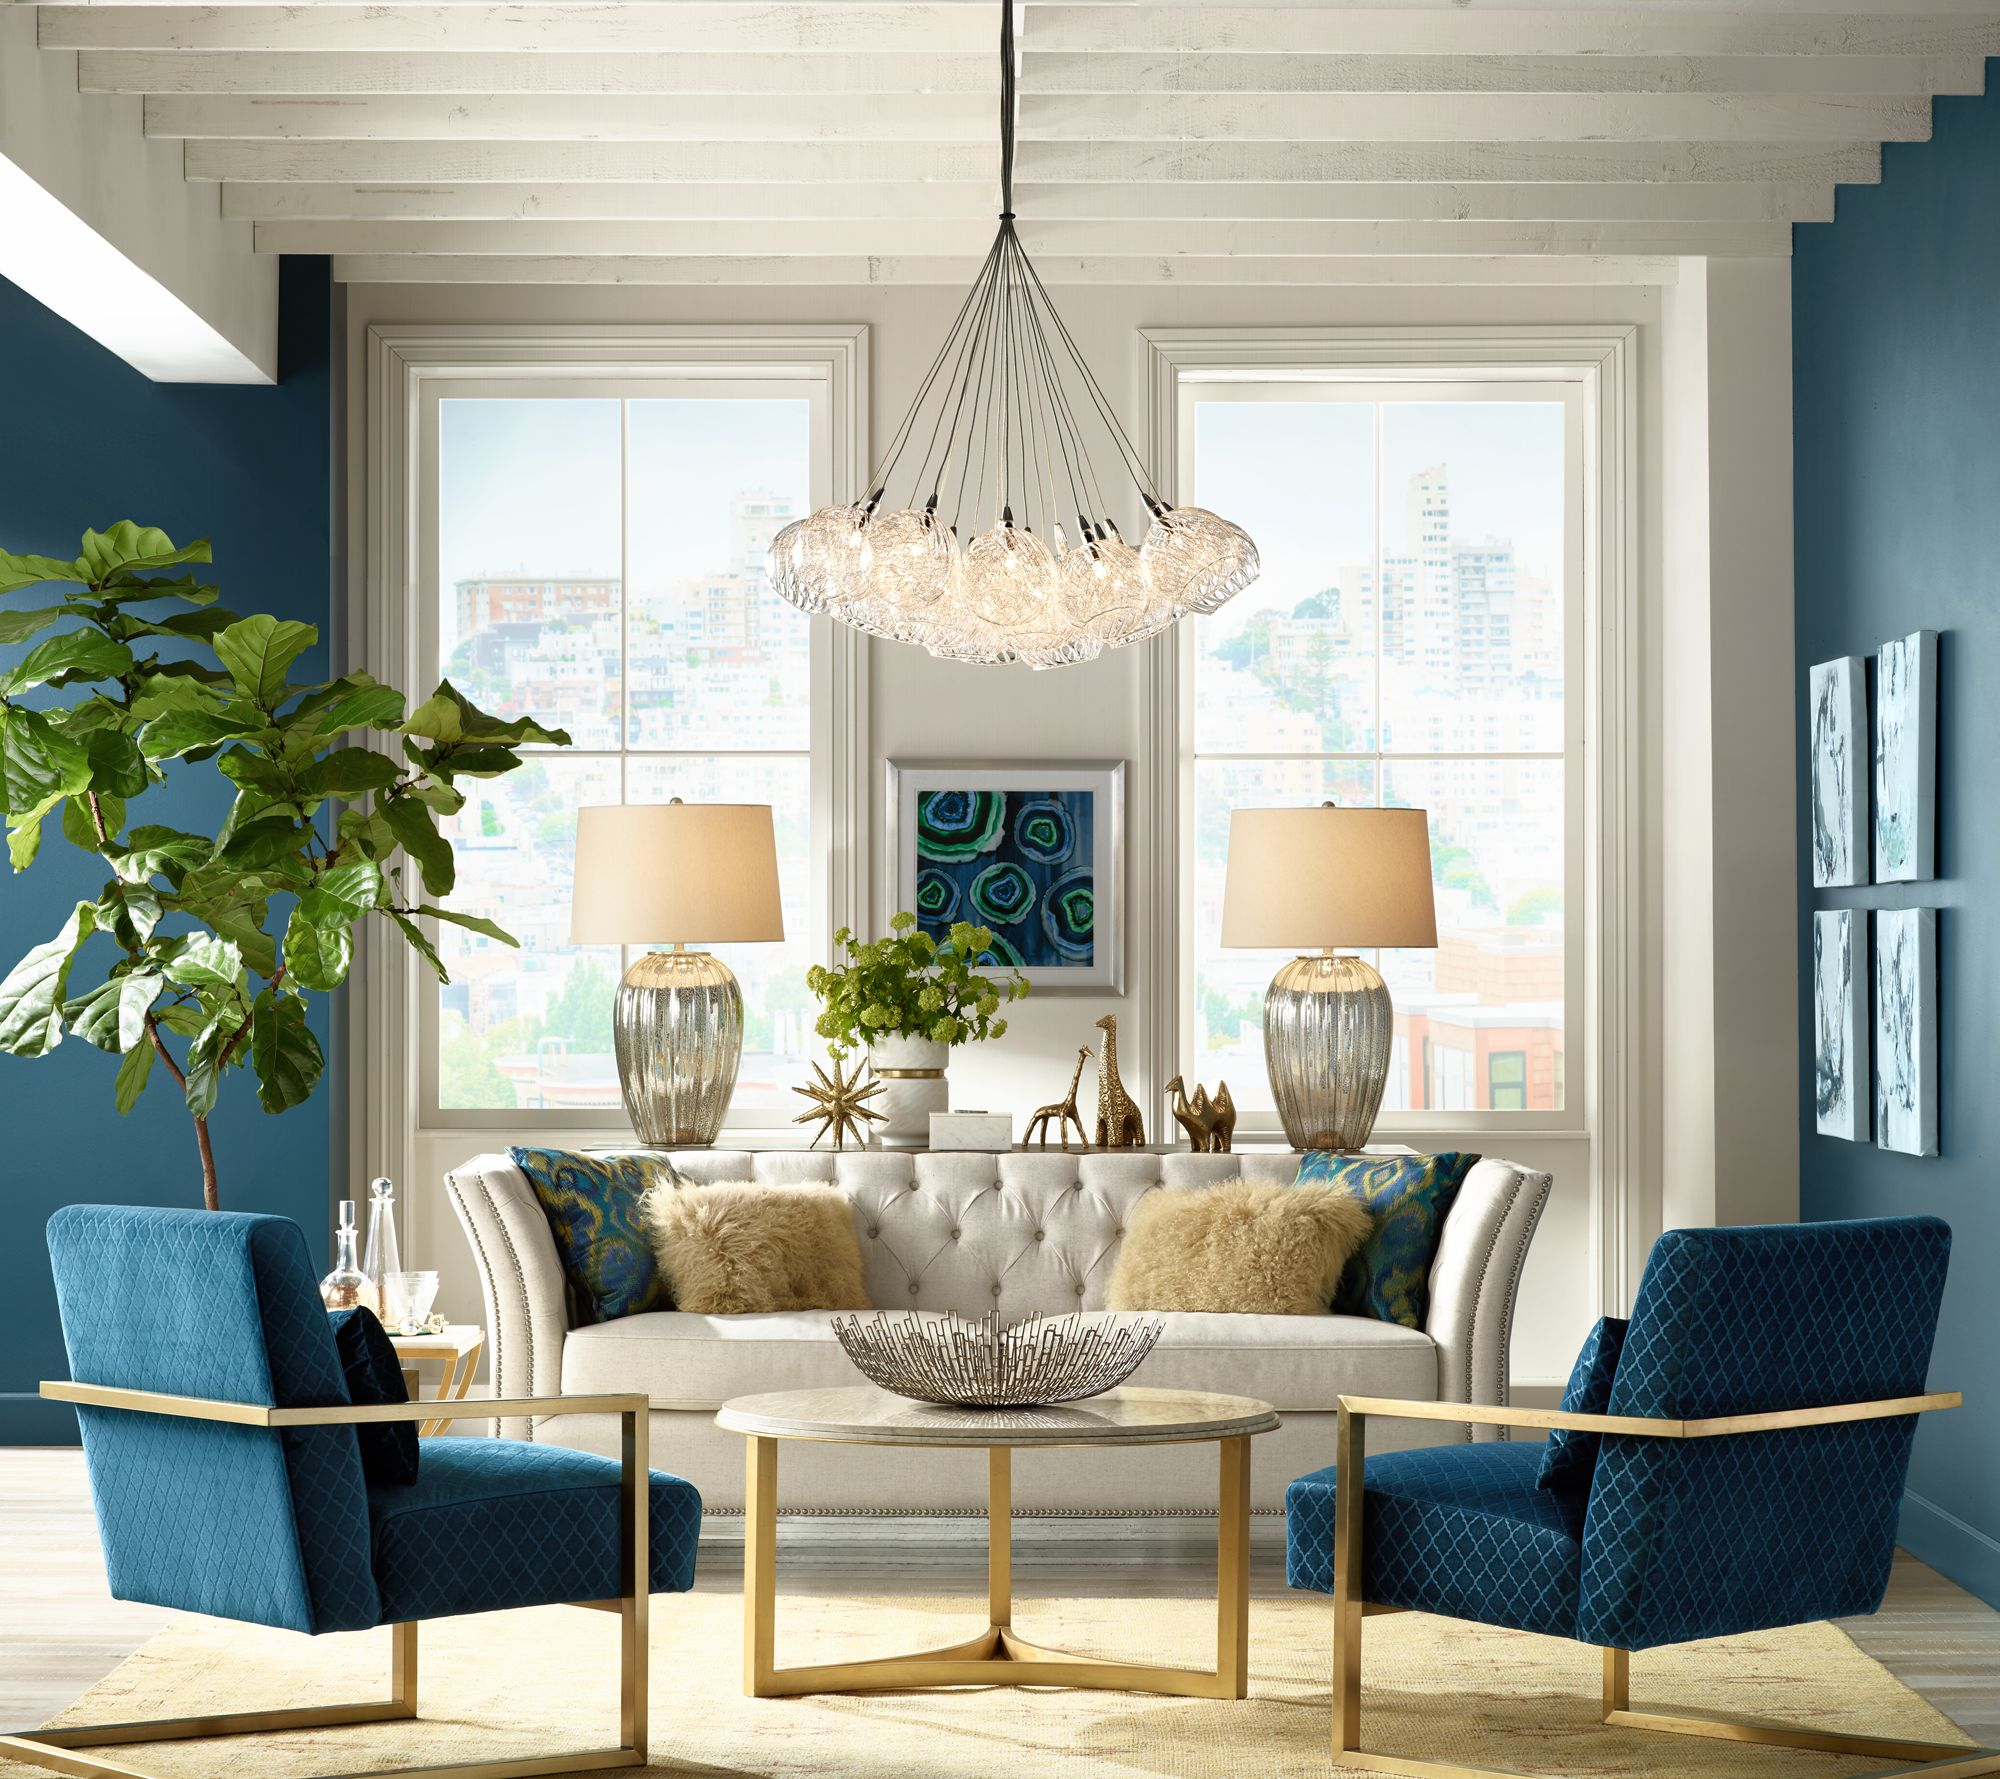 living room lamps make a statement with stunning symmetry. GLTWCPX